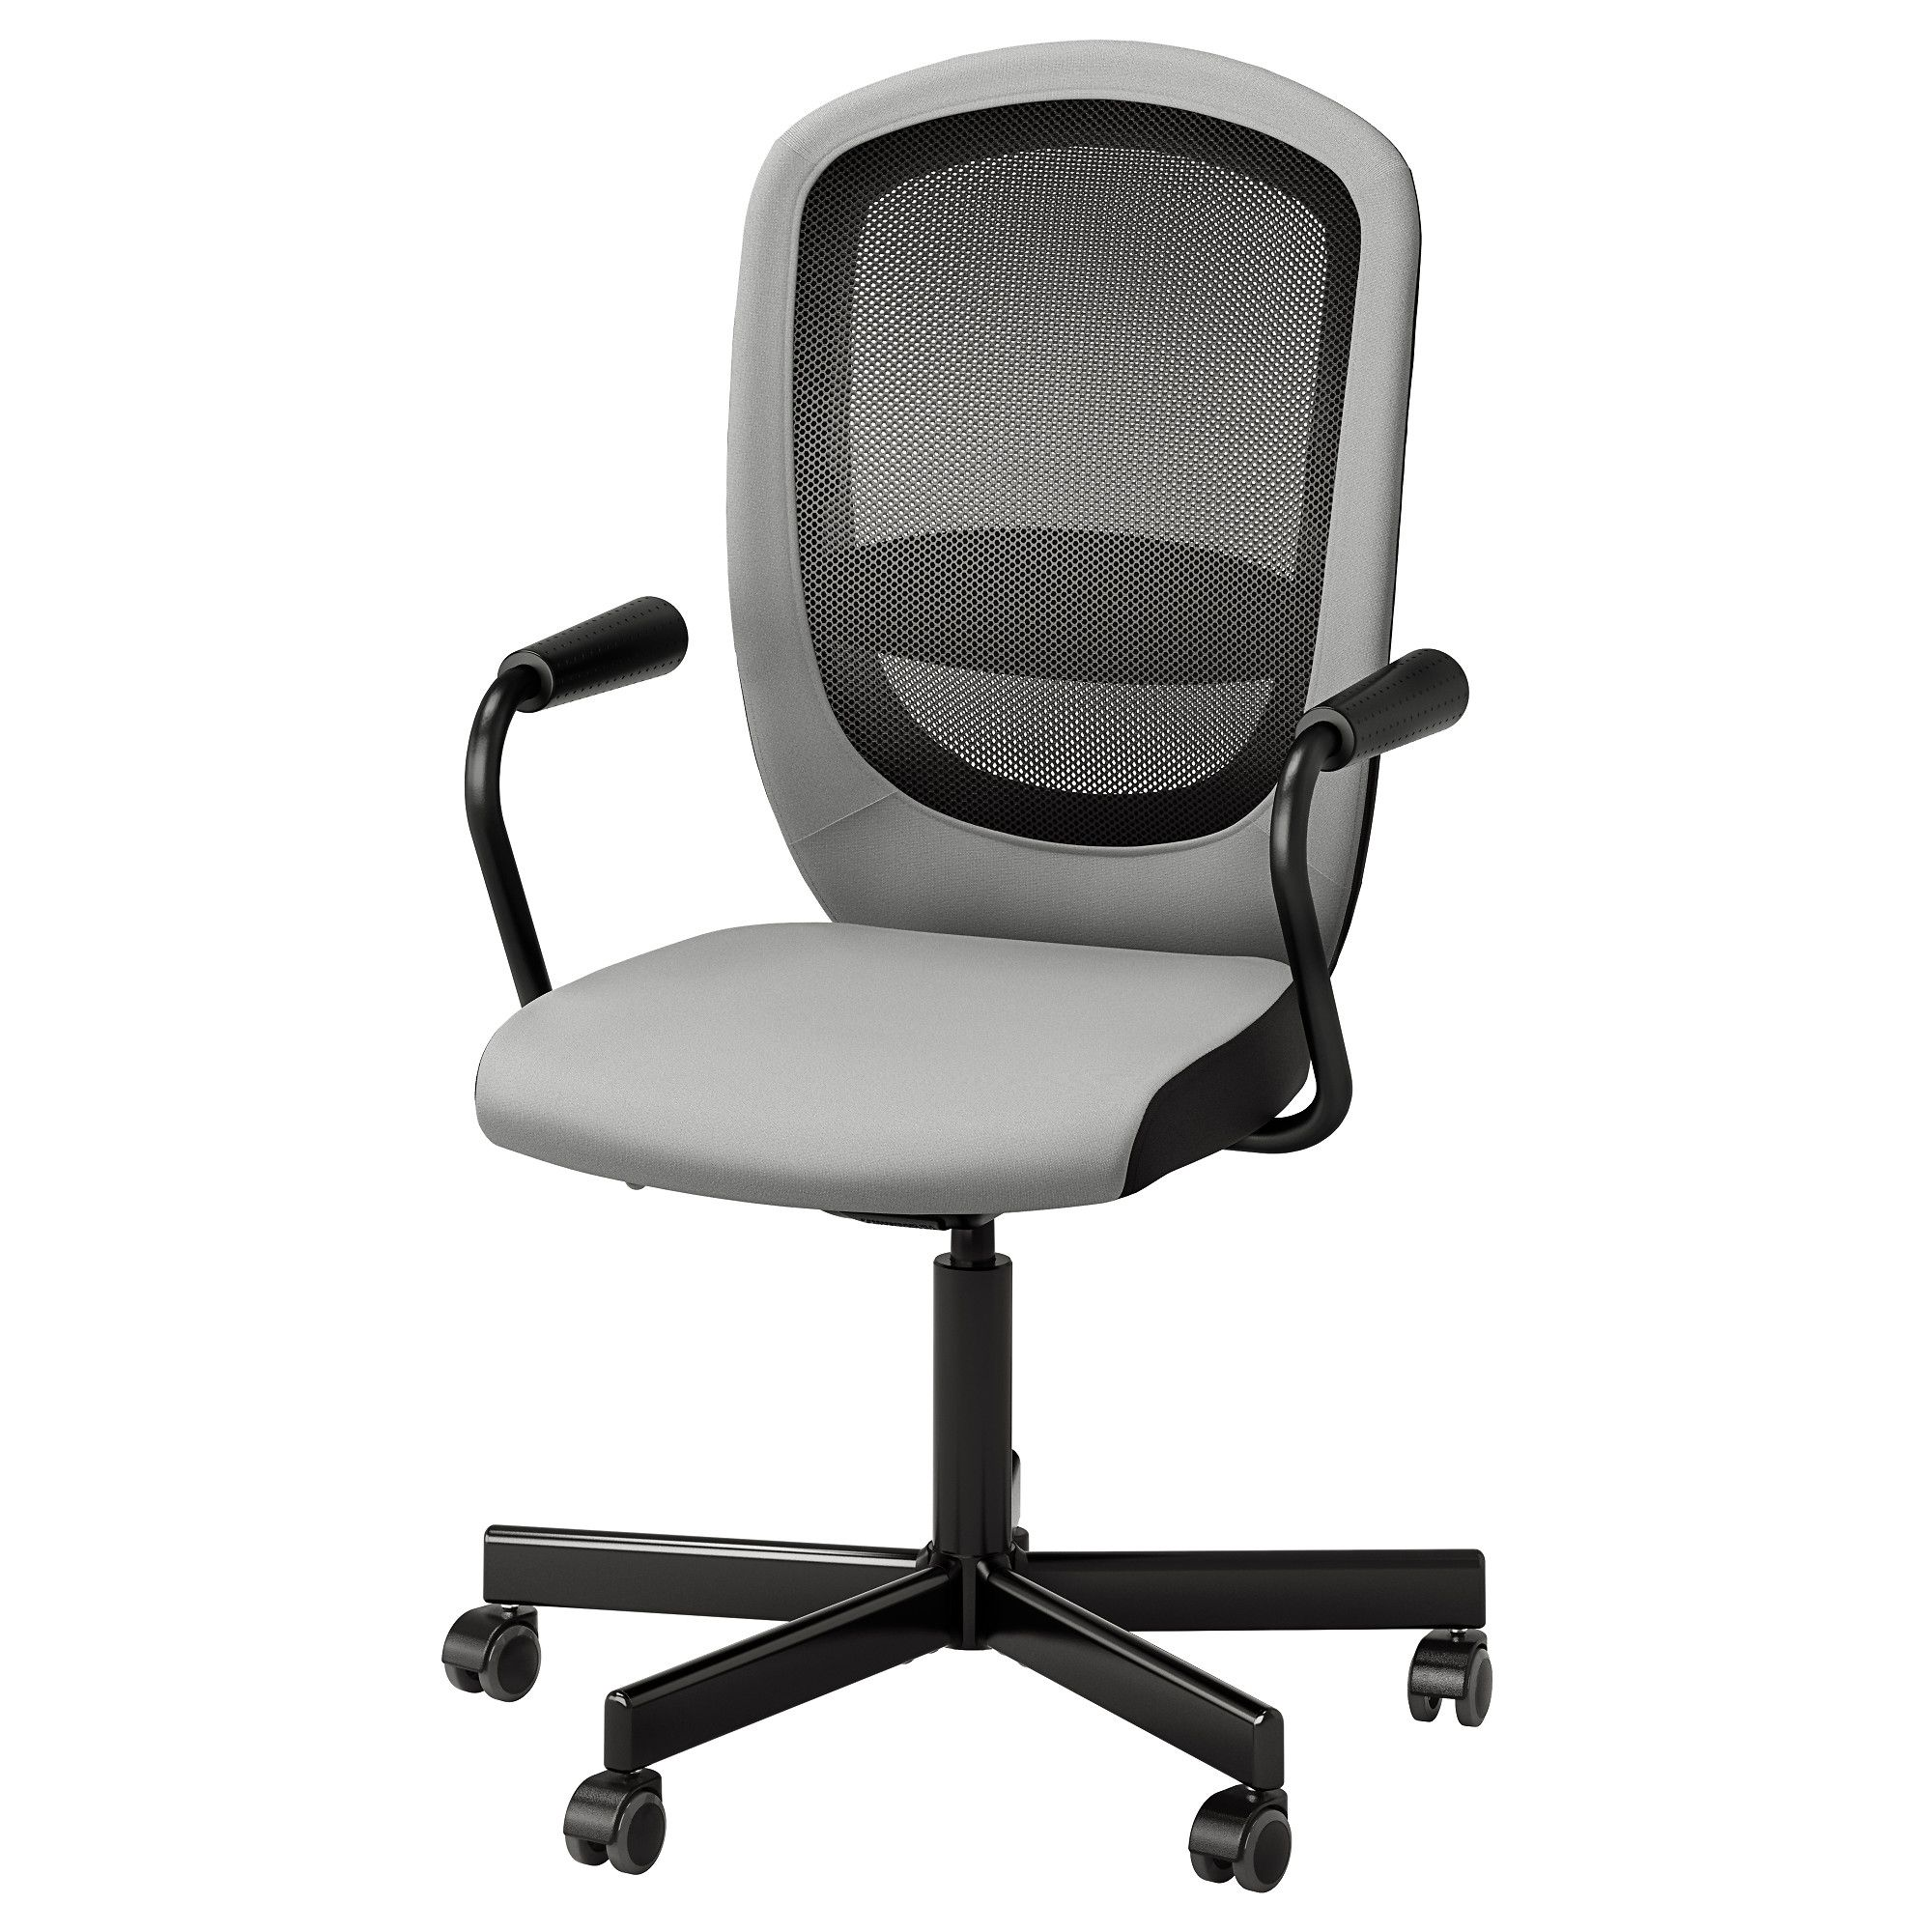 IKEA FLINTAN NOMINELL swivel chair with armrests Relieves strain